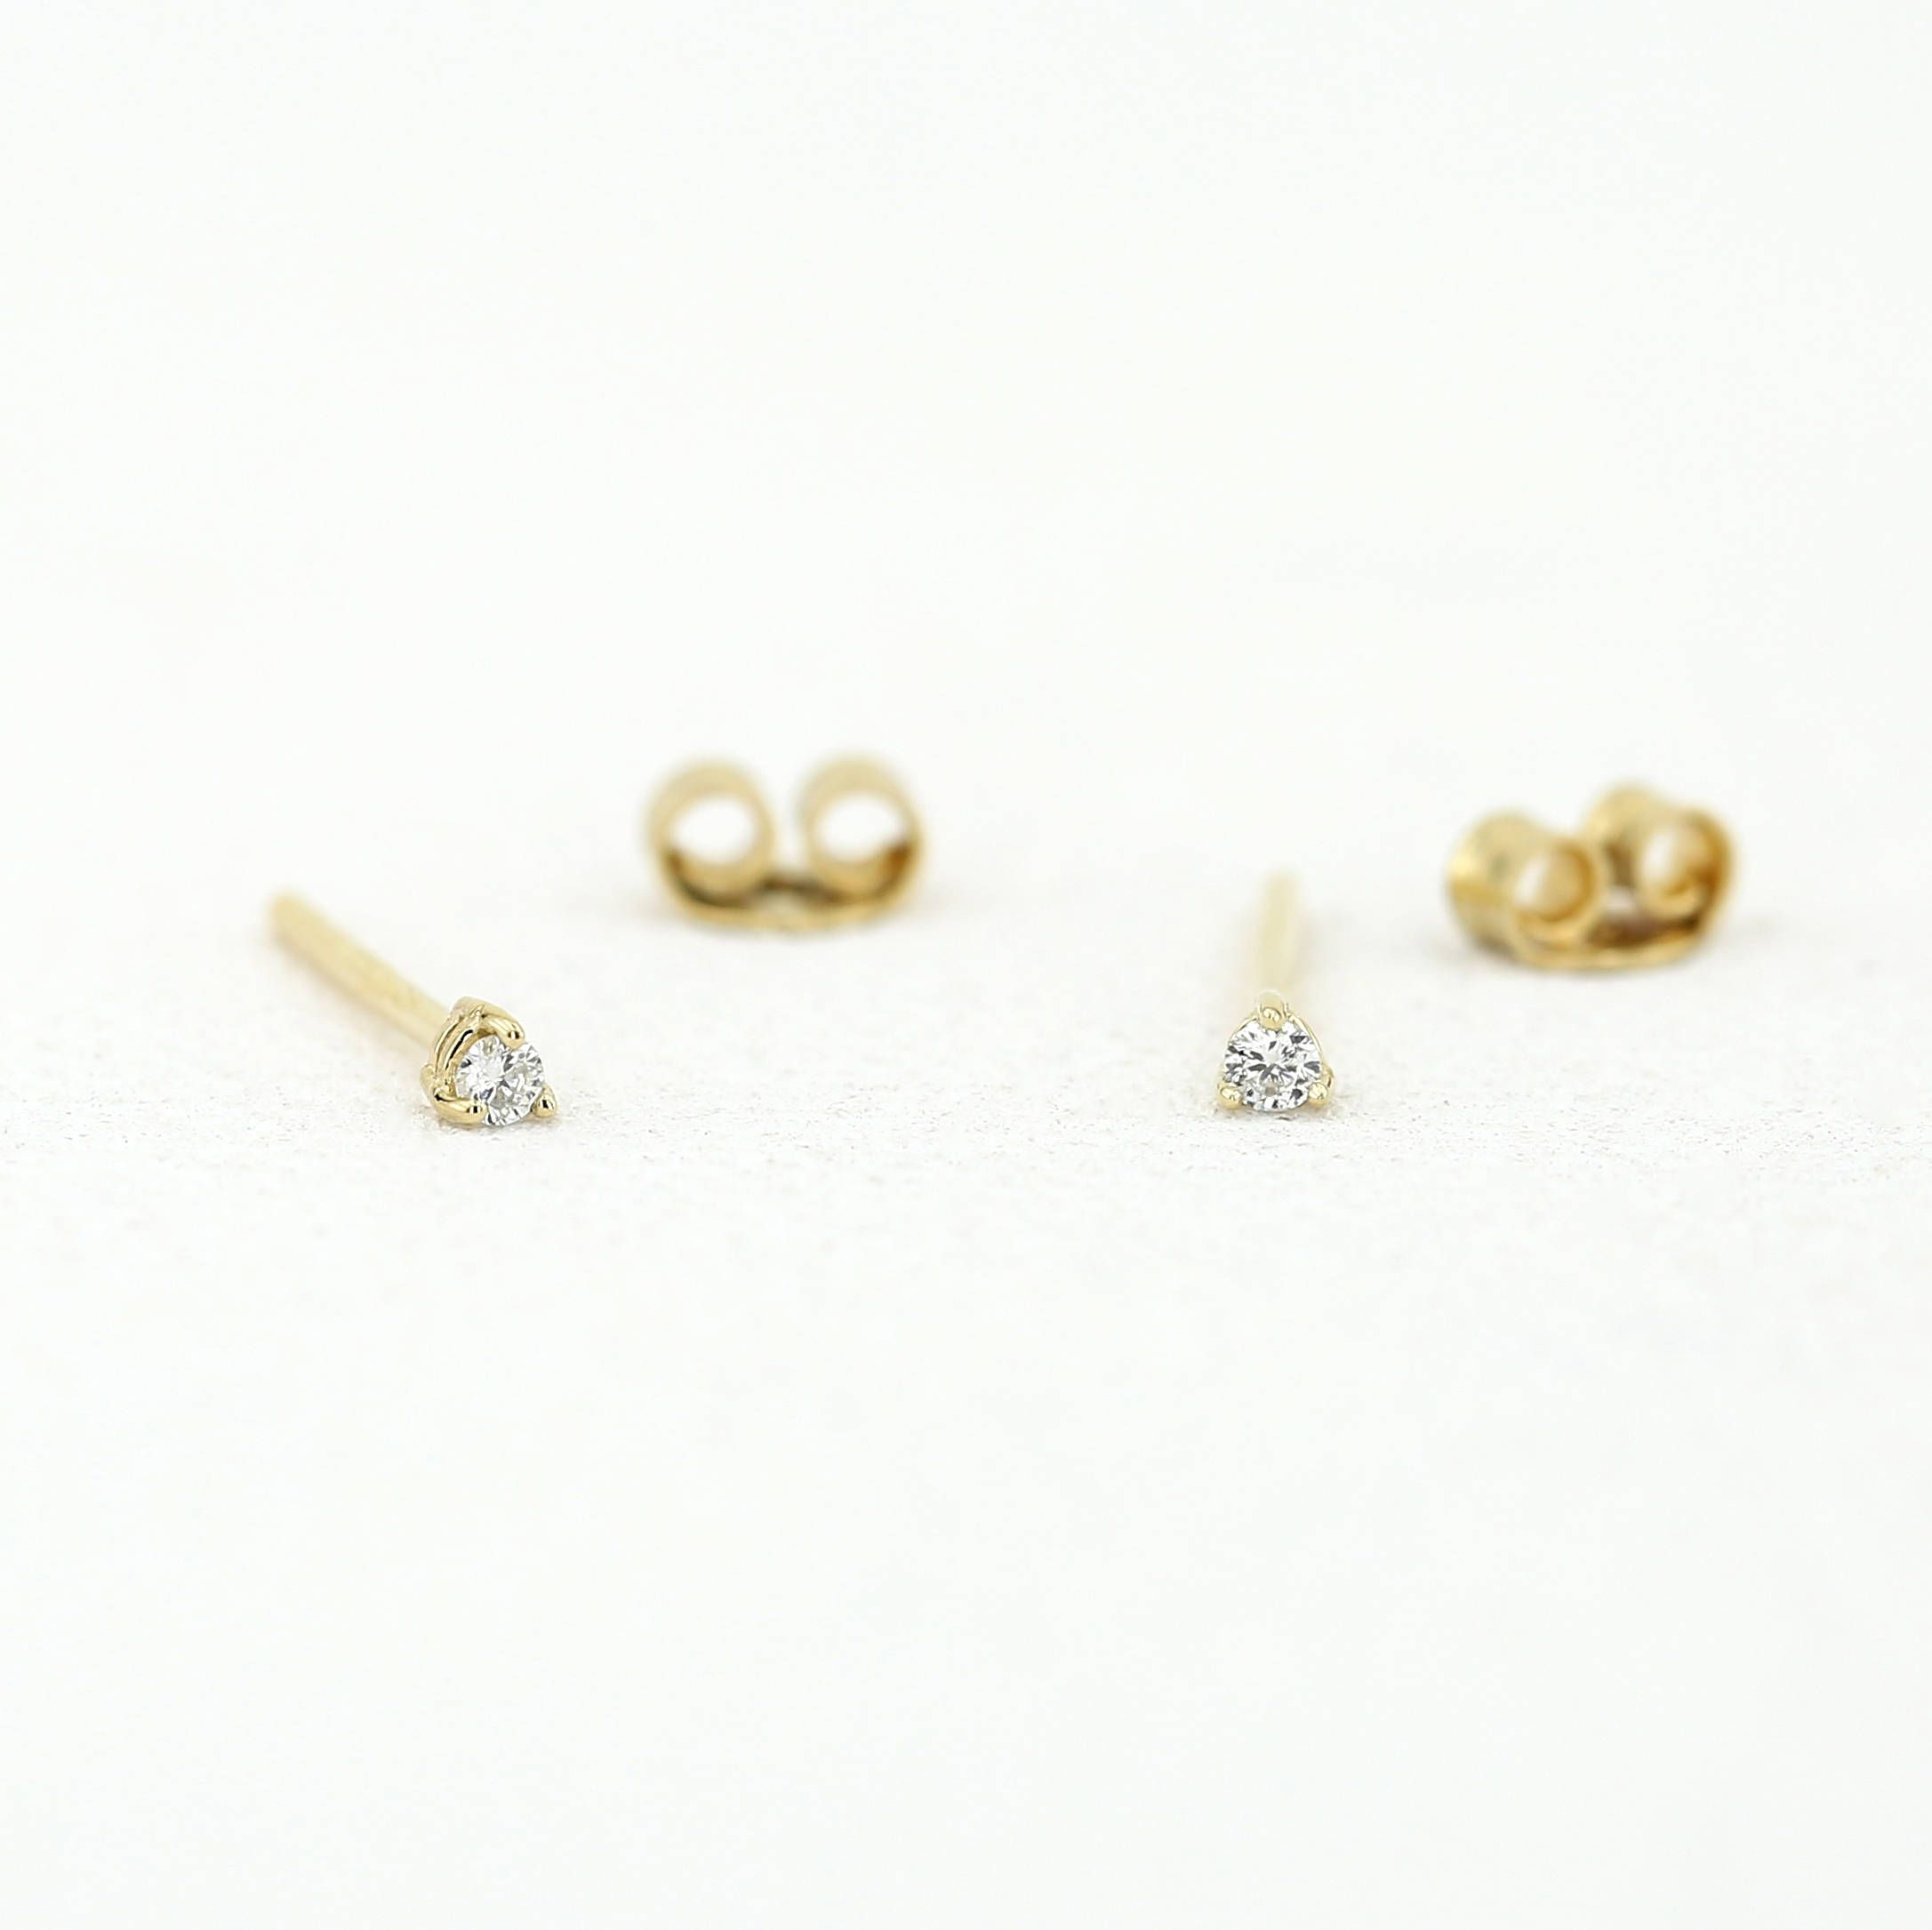 round studs home jewelry prong stud stock photography diamond